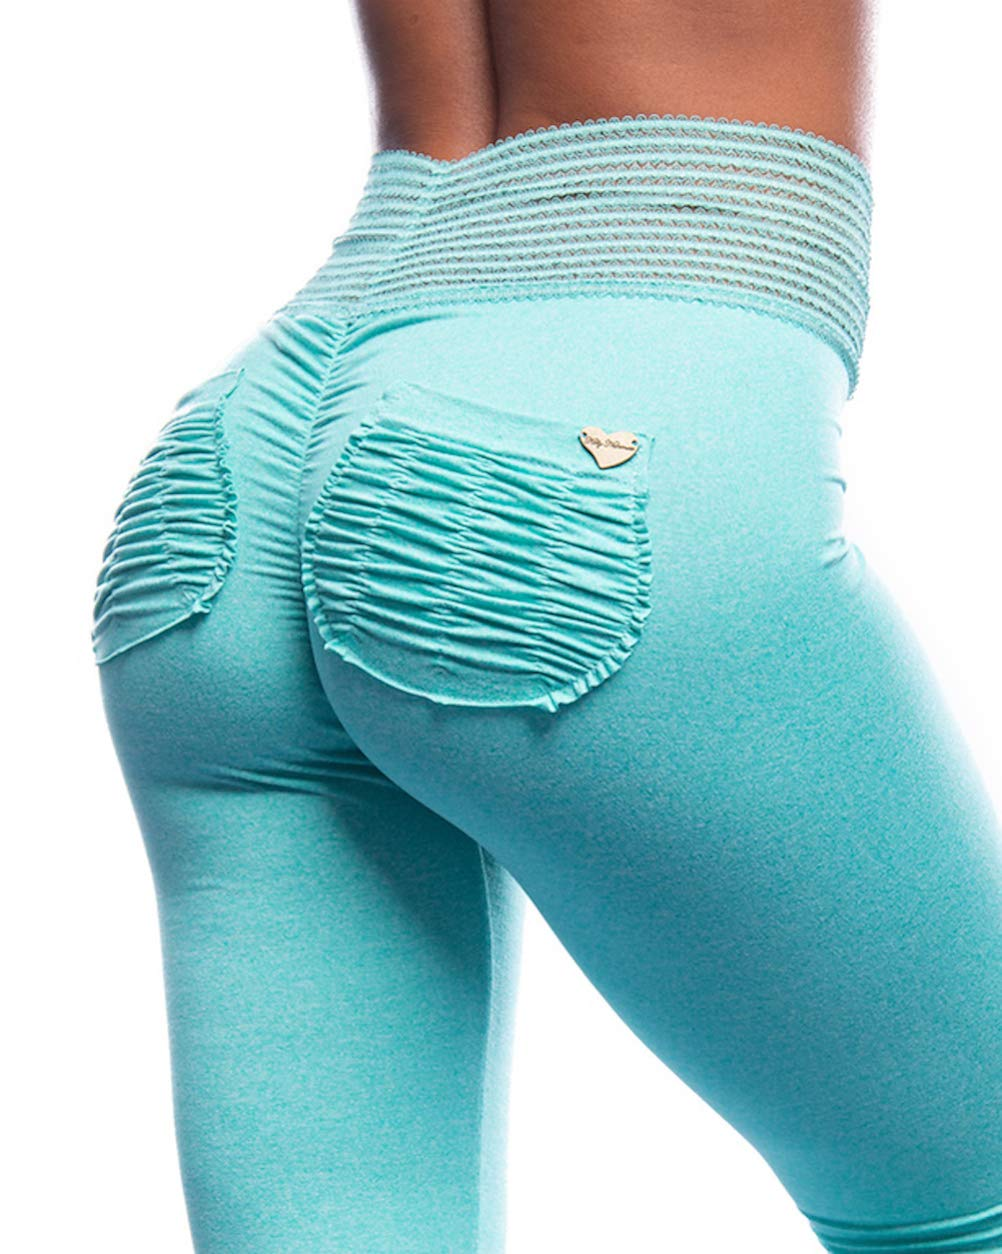 CUTE BOOTY Lounge - Aqua Summer Sorbet Active Large - Moisture Wicking Women's Anti-Microbial Workout Leggings Squat Proof, Sweat Proof, UV Protection with Signature Scrunch Pockets by CUTE BOOTY